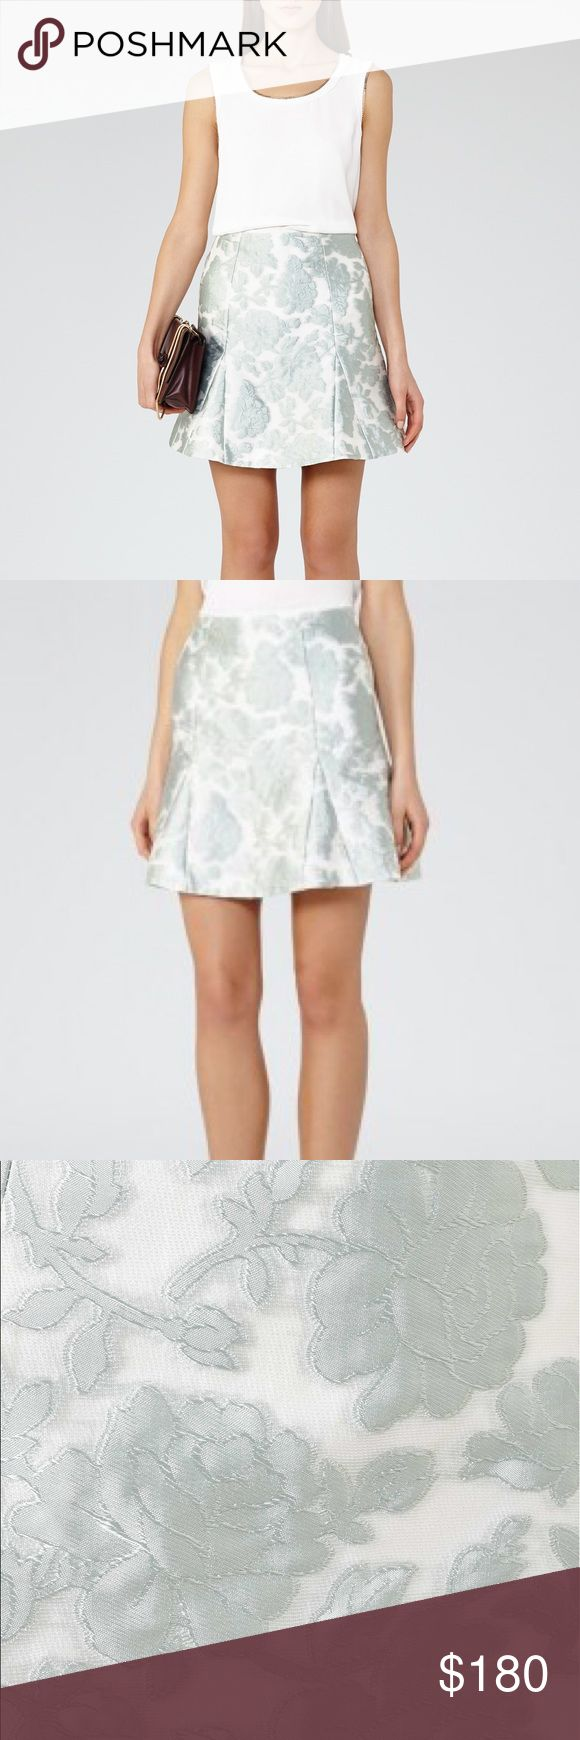 NWT REISS London Tulip Skirt Brand new and absolutely beautiful. Silver/light blue details. Reiss Skirts